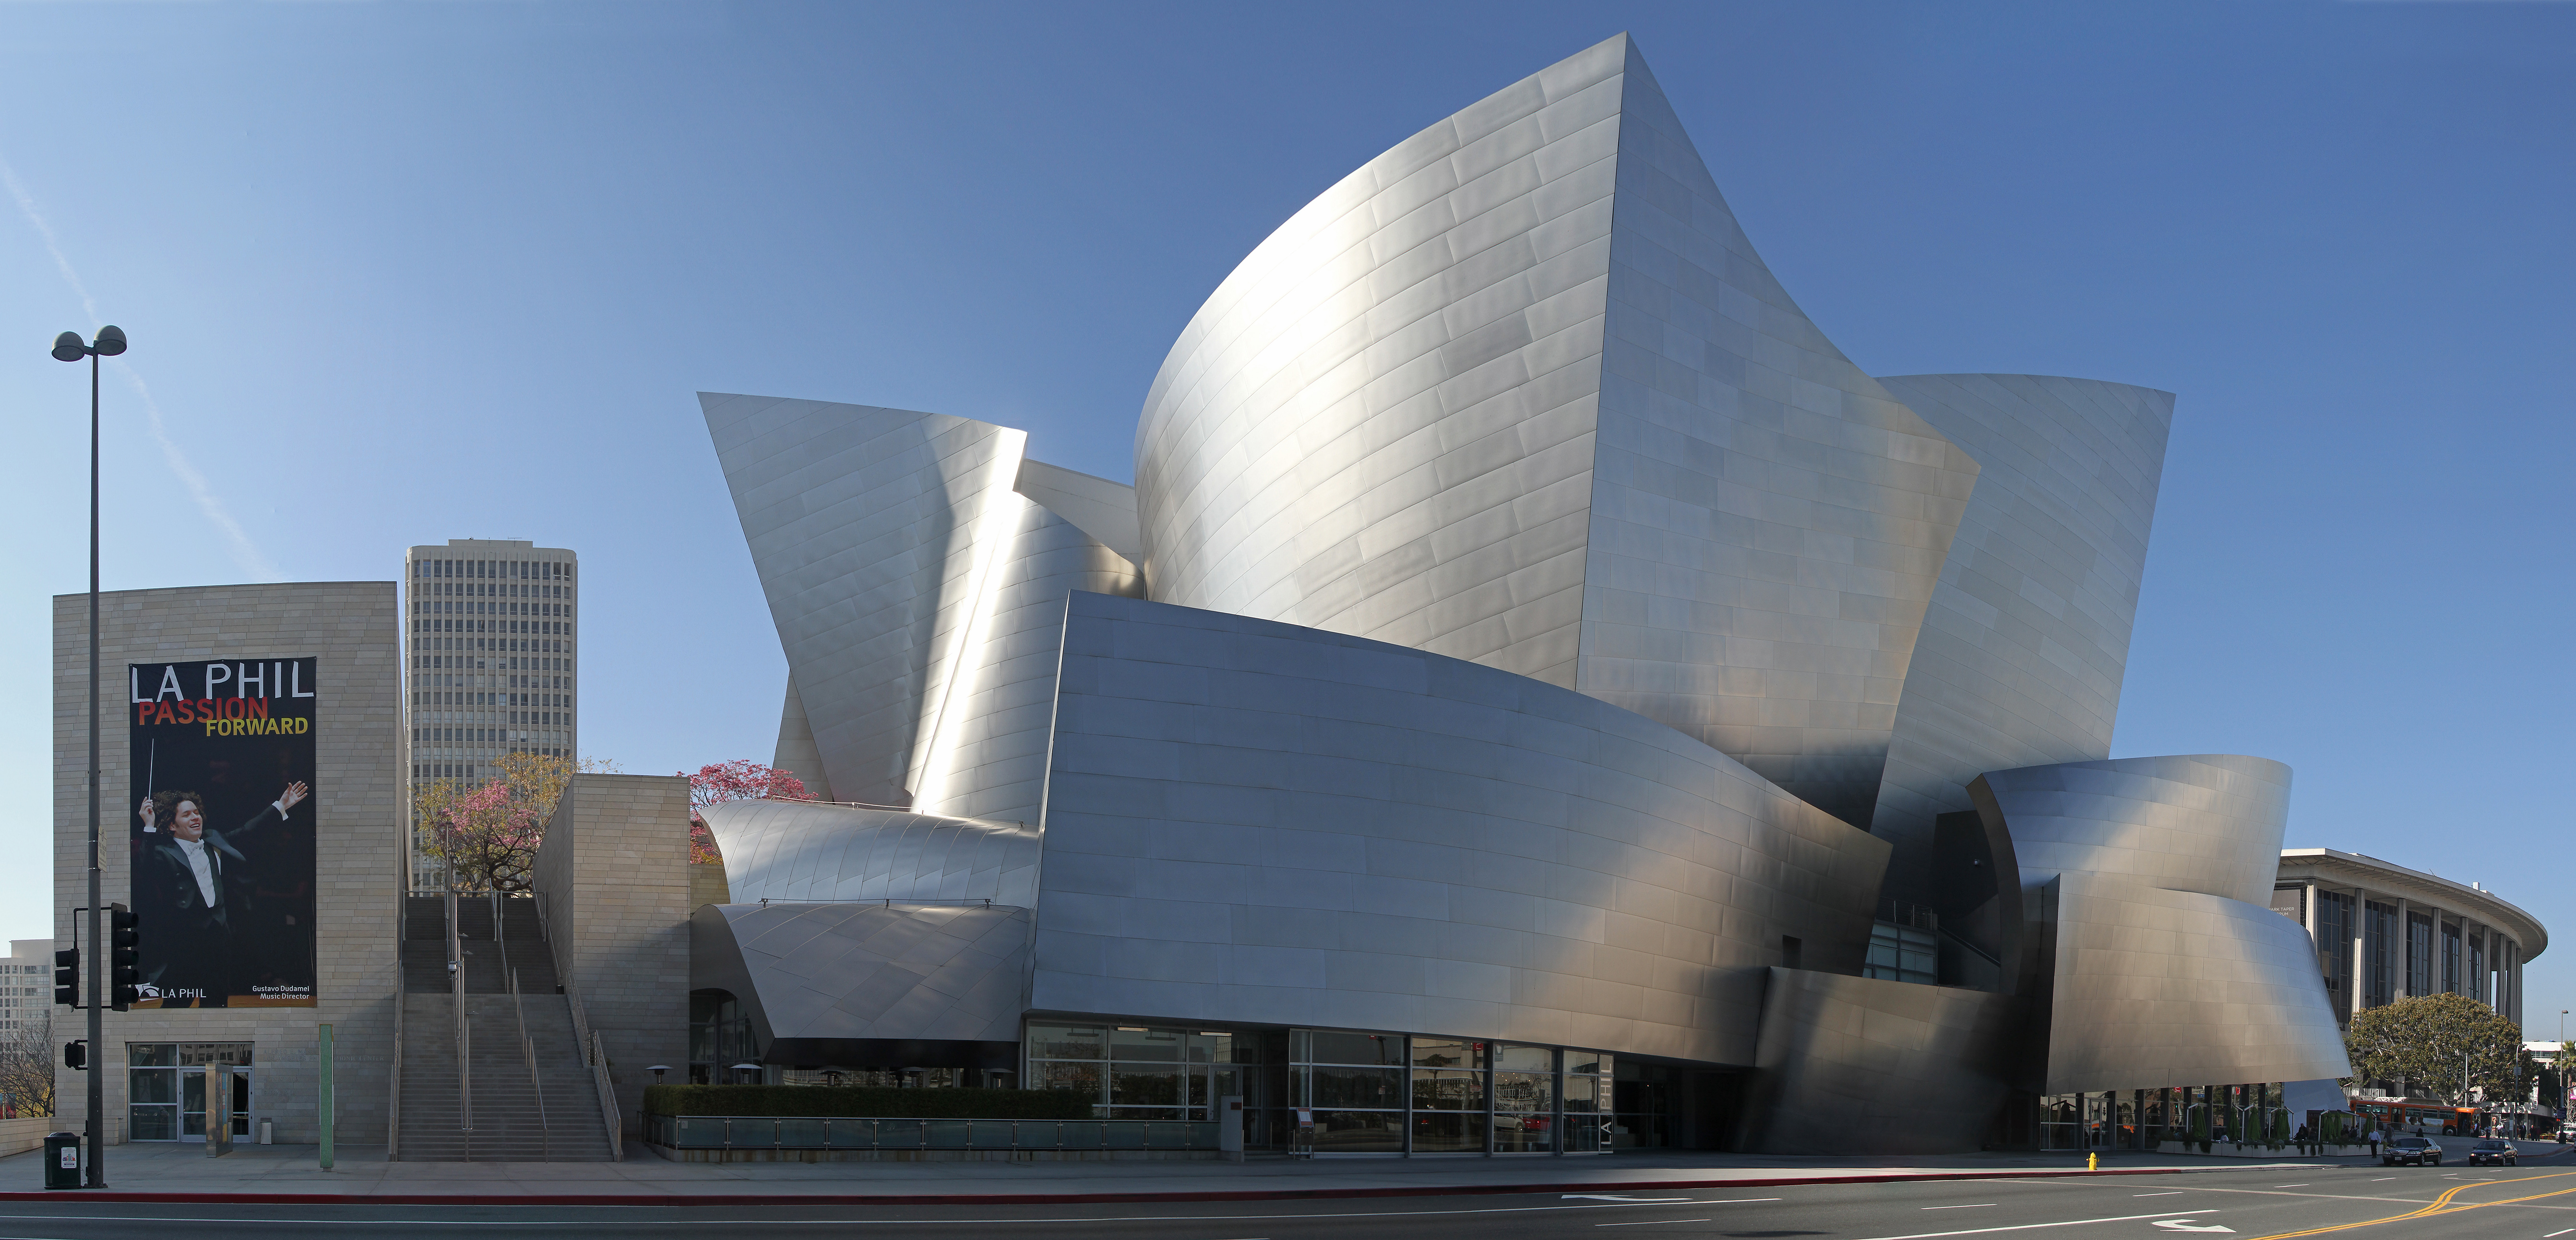 The Disney Concert Hall by Frank Gehry (picture from Wikipedia)